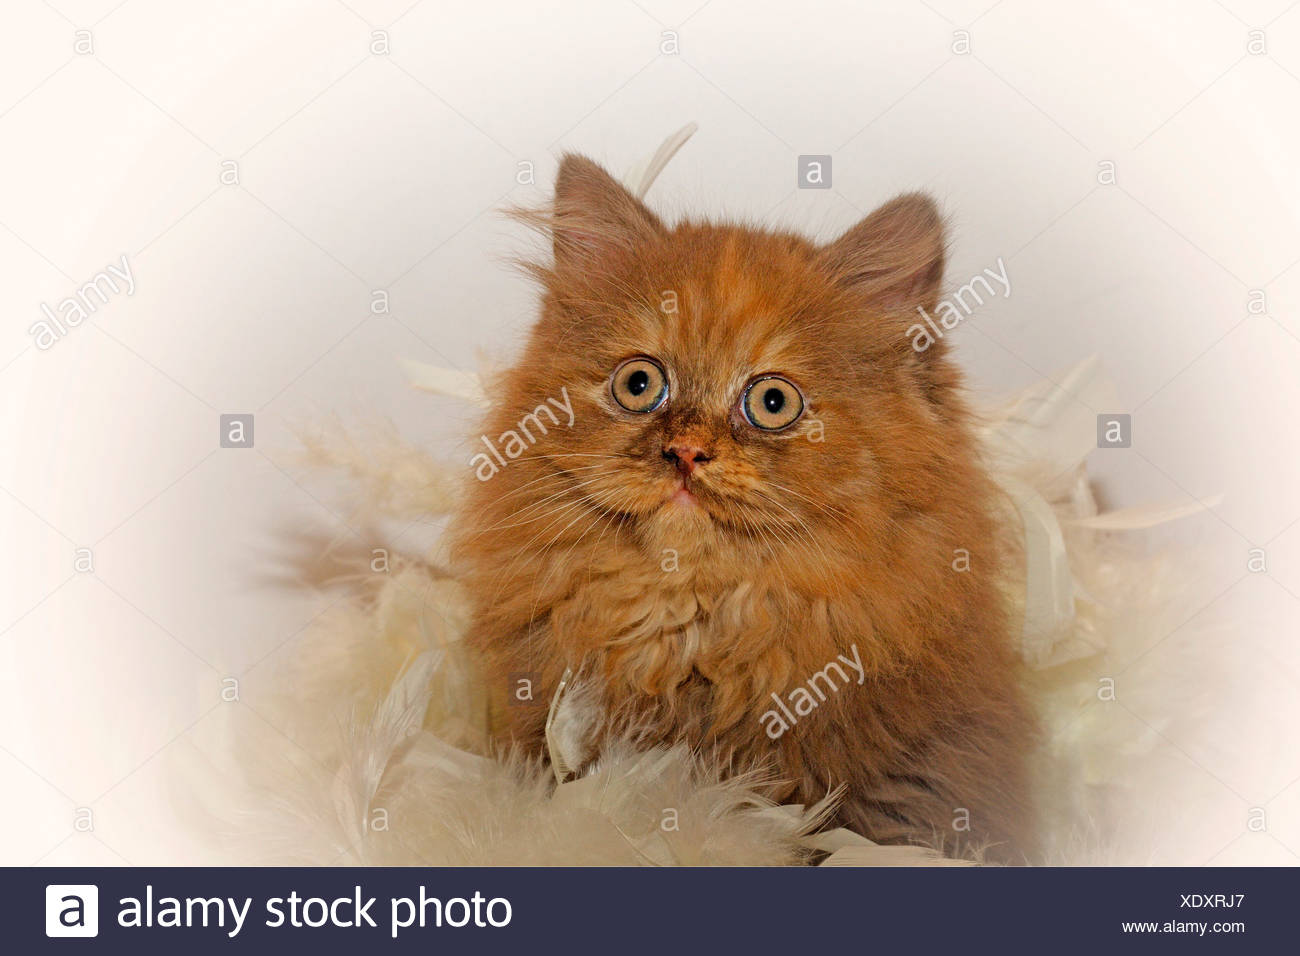 British Longhair, Highlander, Lowlander (Felis silvestris f. catus), portrait of a nine weeks old kitten in chocolate tortie wrapped into a feather boa Stock Photo